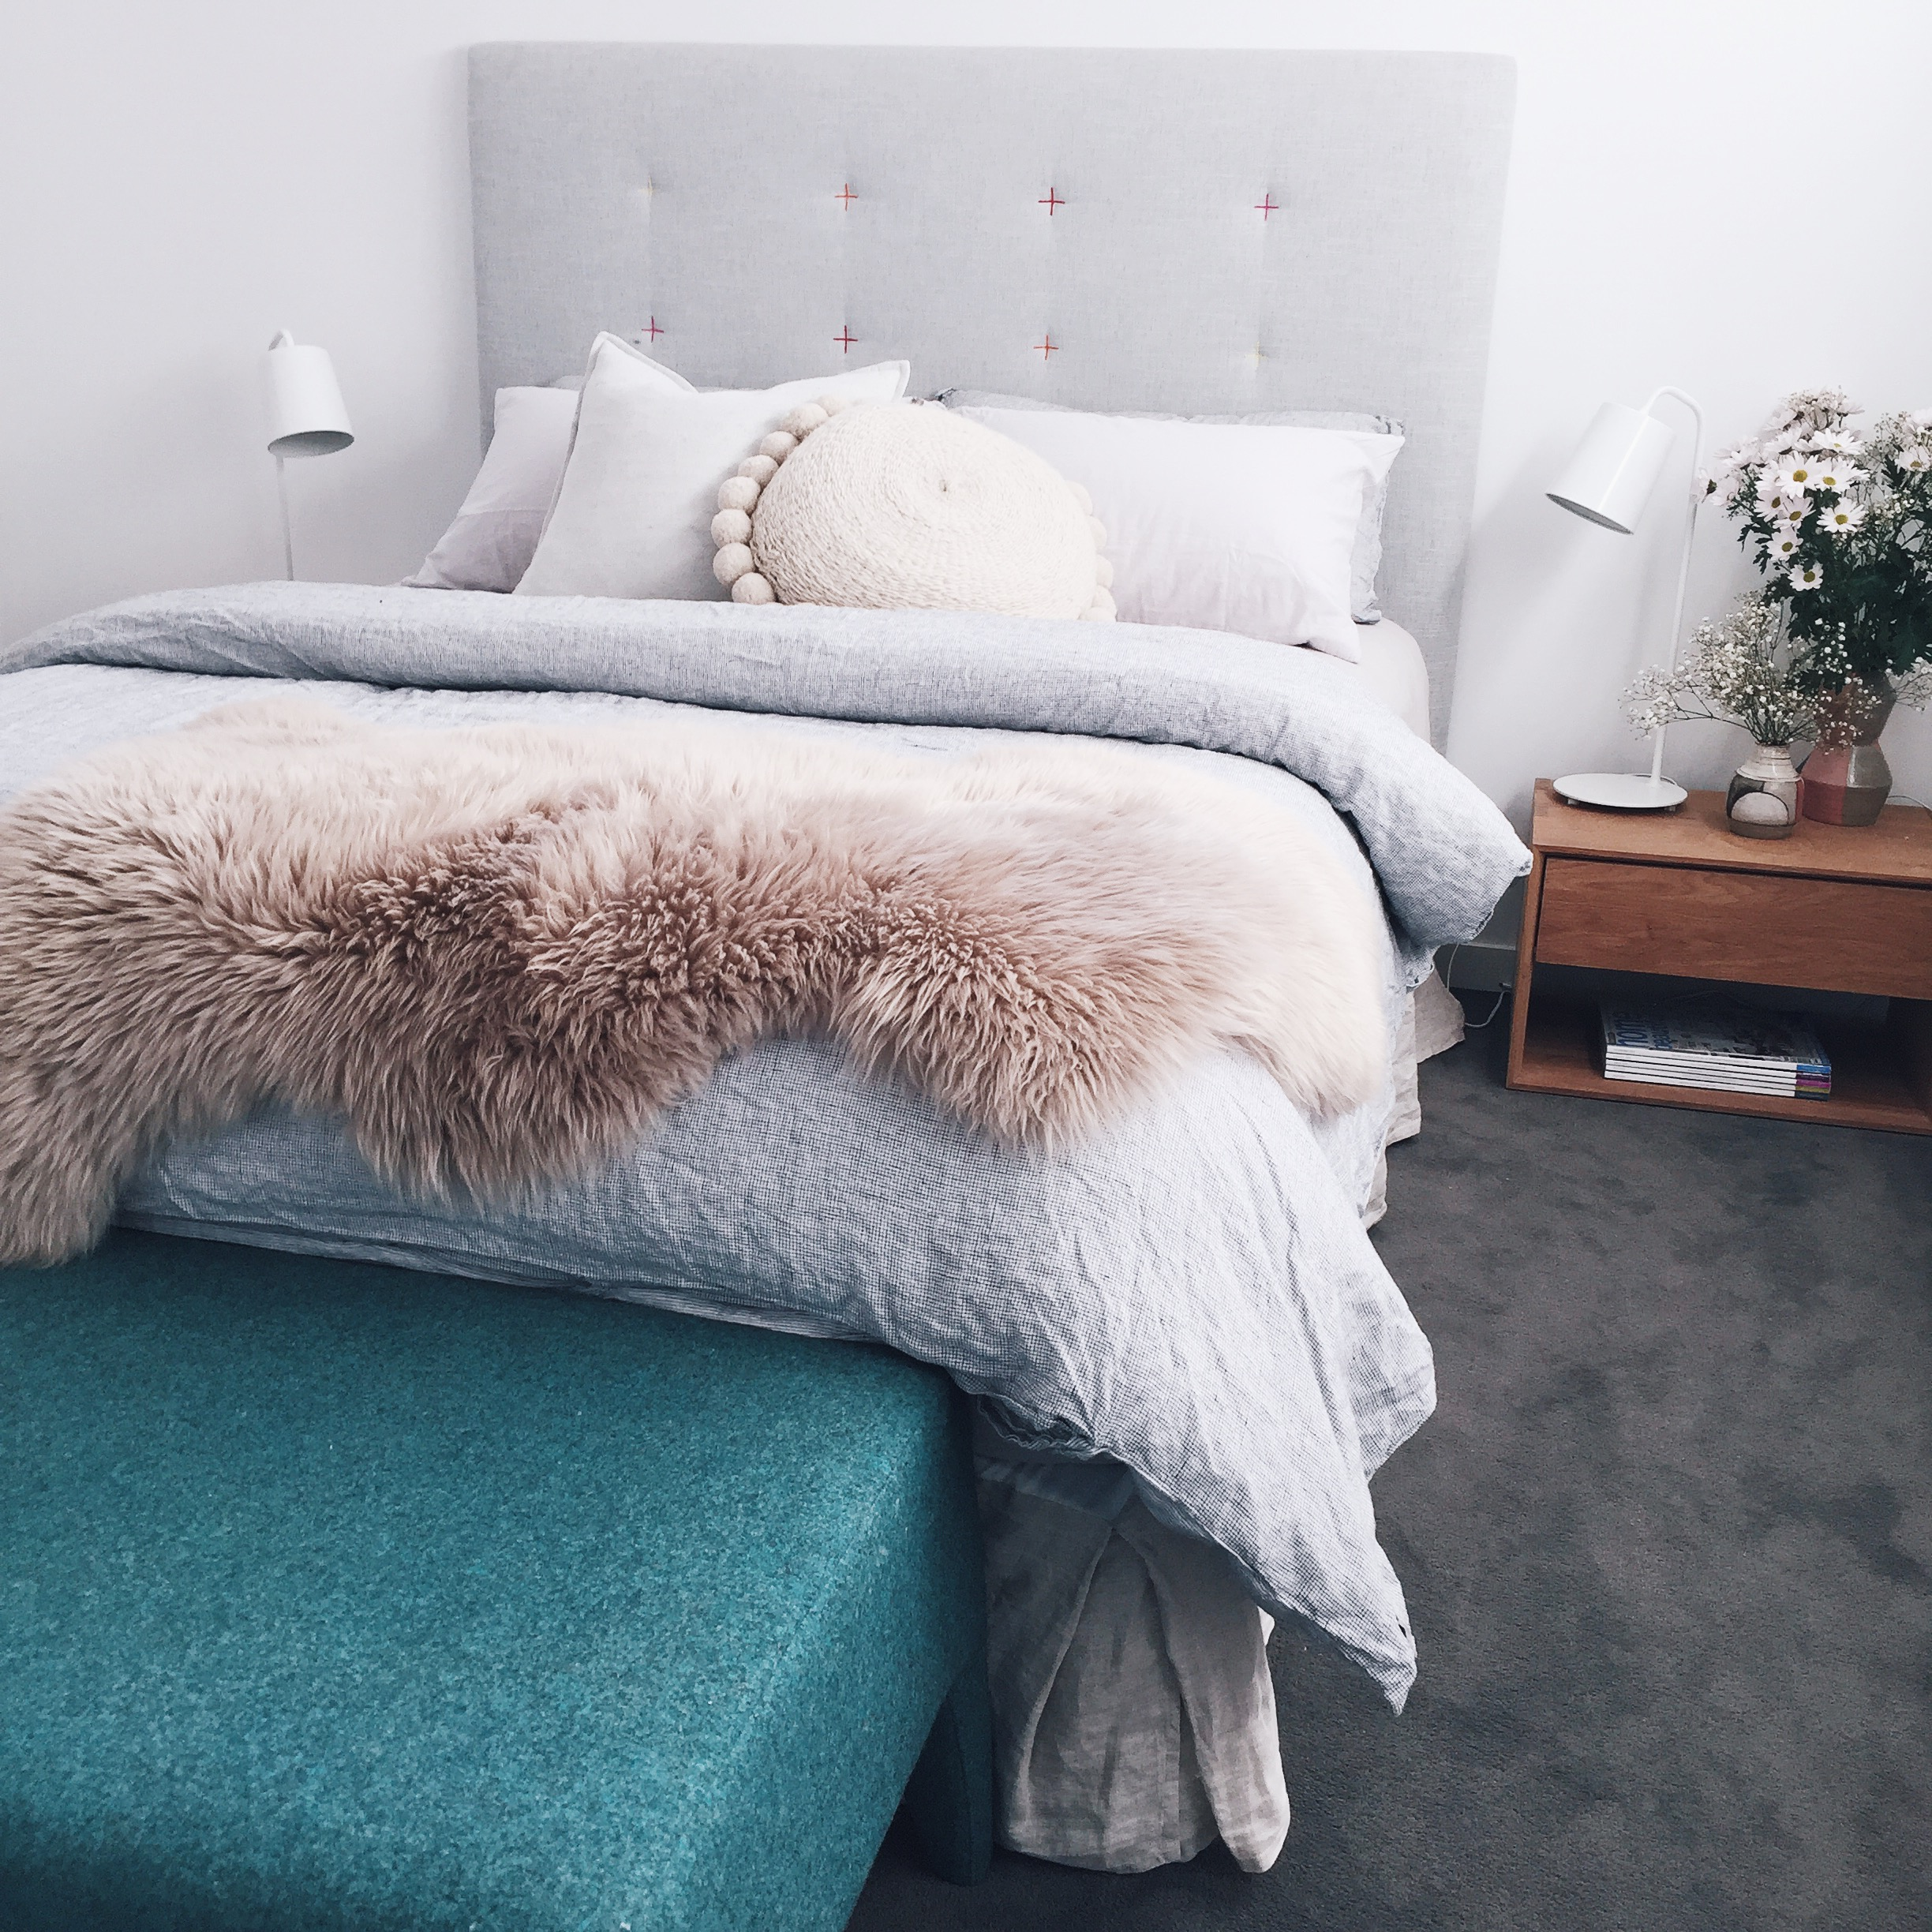 I loved the Vintage Washed Linen White Check duvet cover so much I just had to have it on my own bed at home! It's as soft and cosy as it looks!